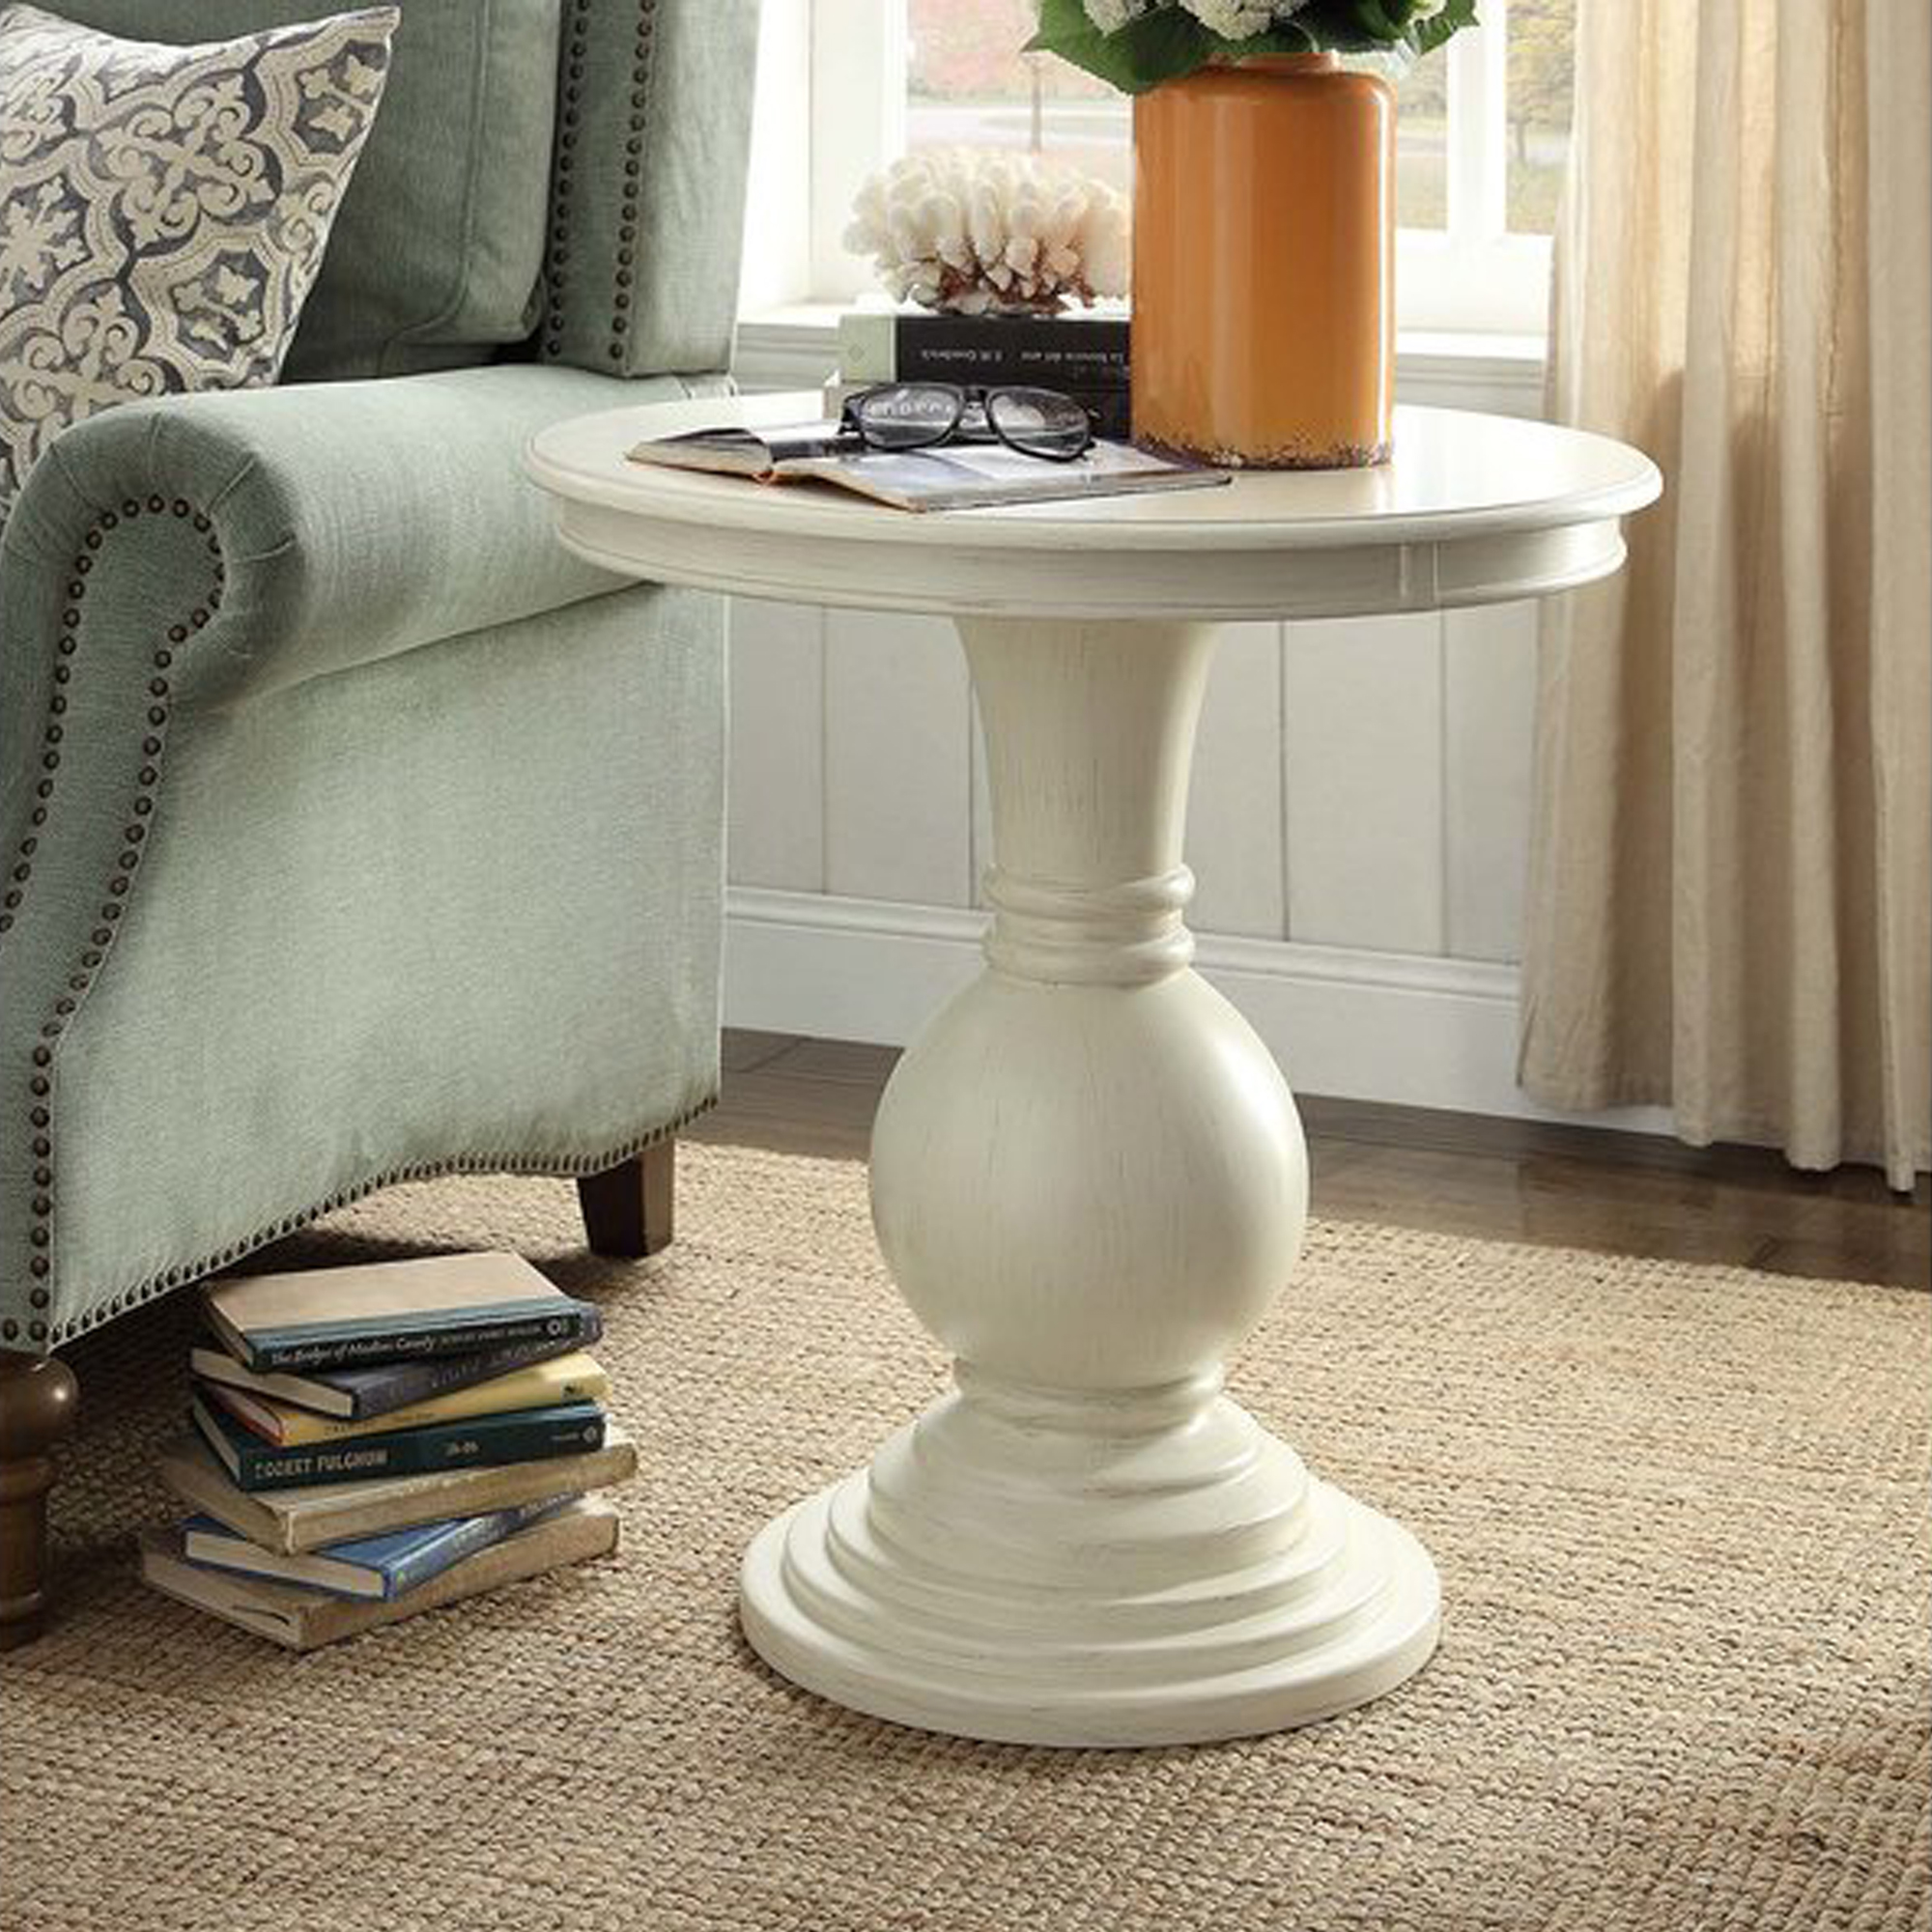 tall pedestal accent table design ideas round end tables side lamp for wrought iron small black distressed off white metal best accentuate your living inch tablecloth patio